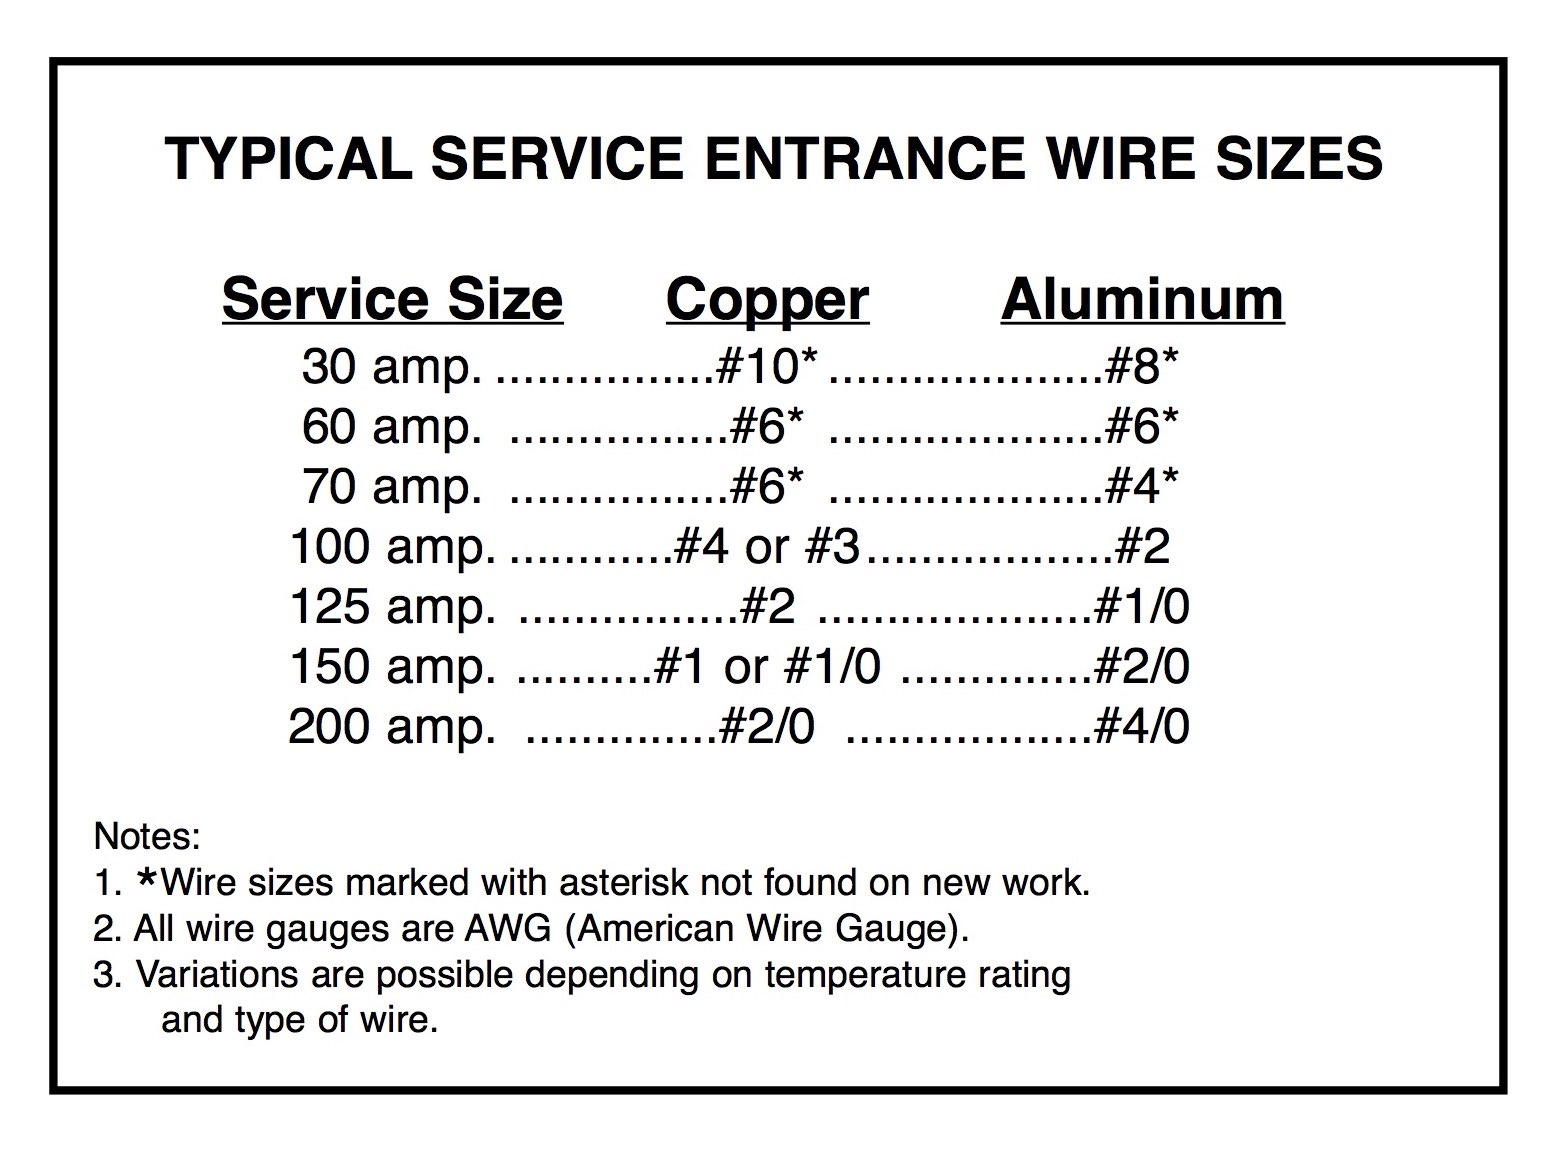 Aluminum Service Wire Sizes - Trusted Wiring Diagram